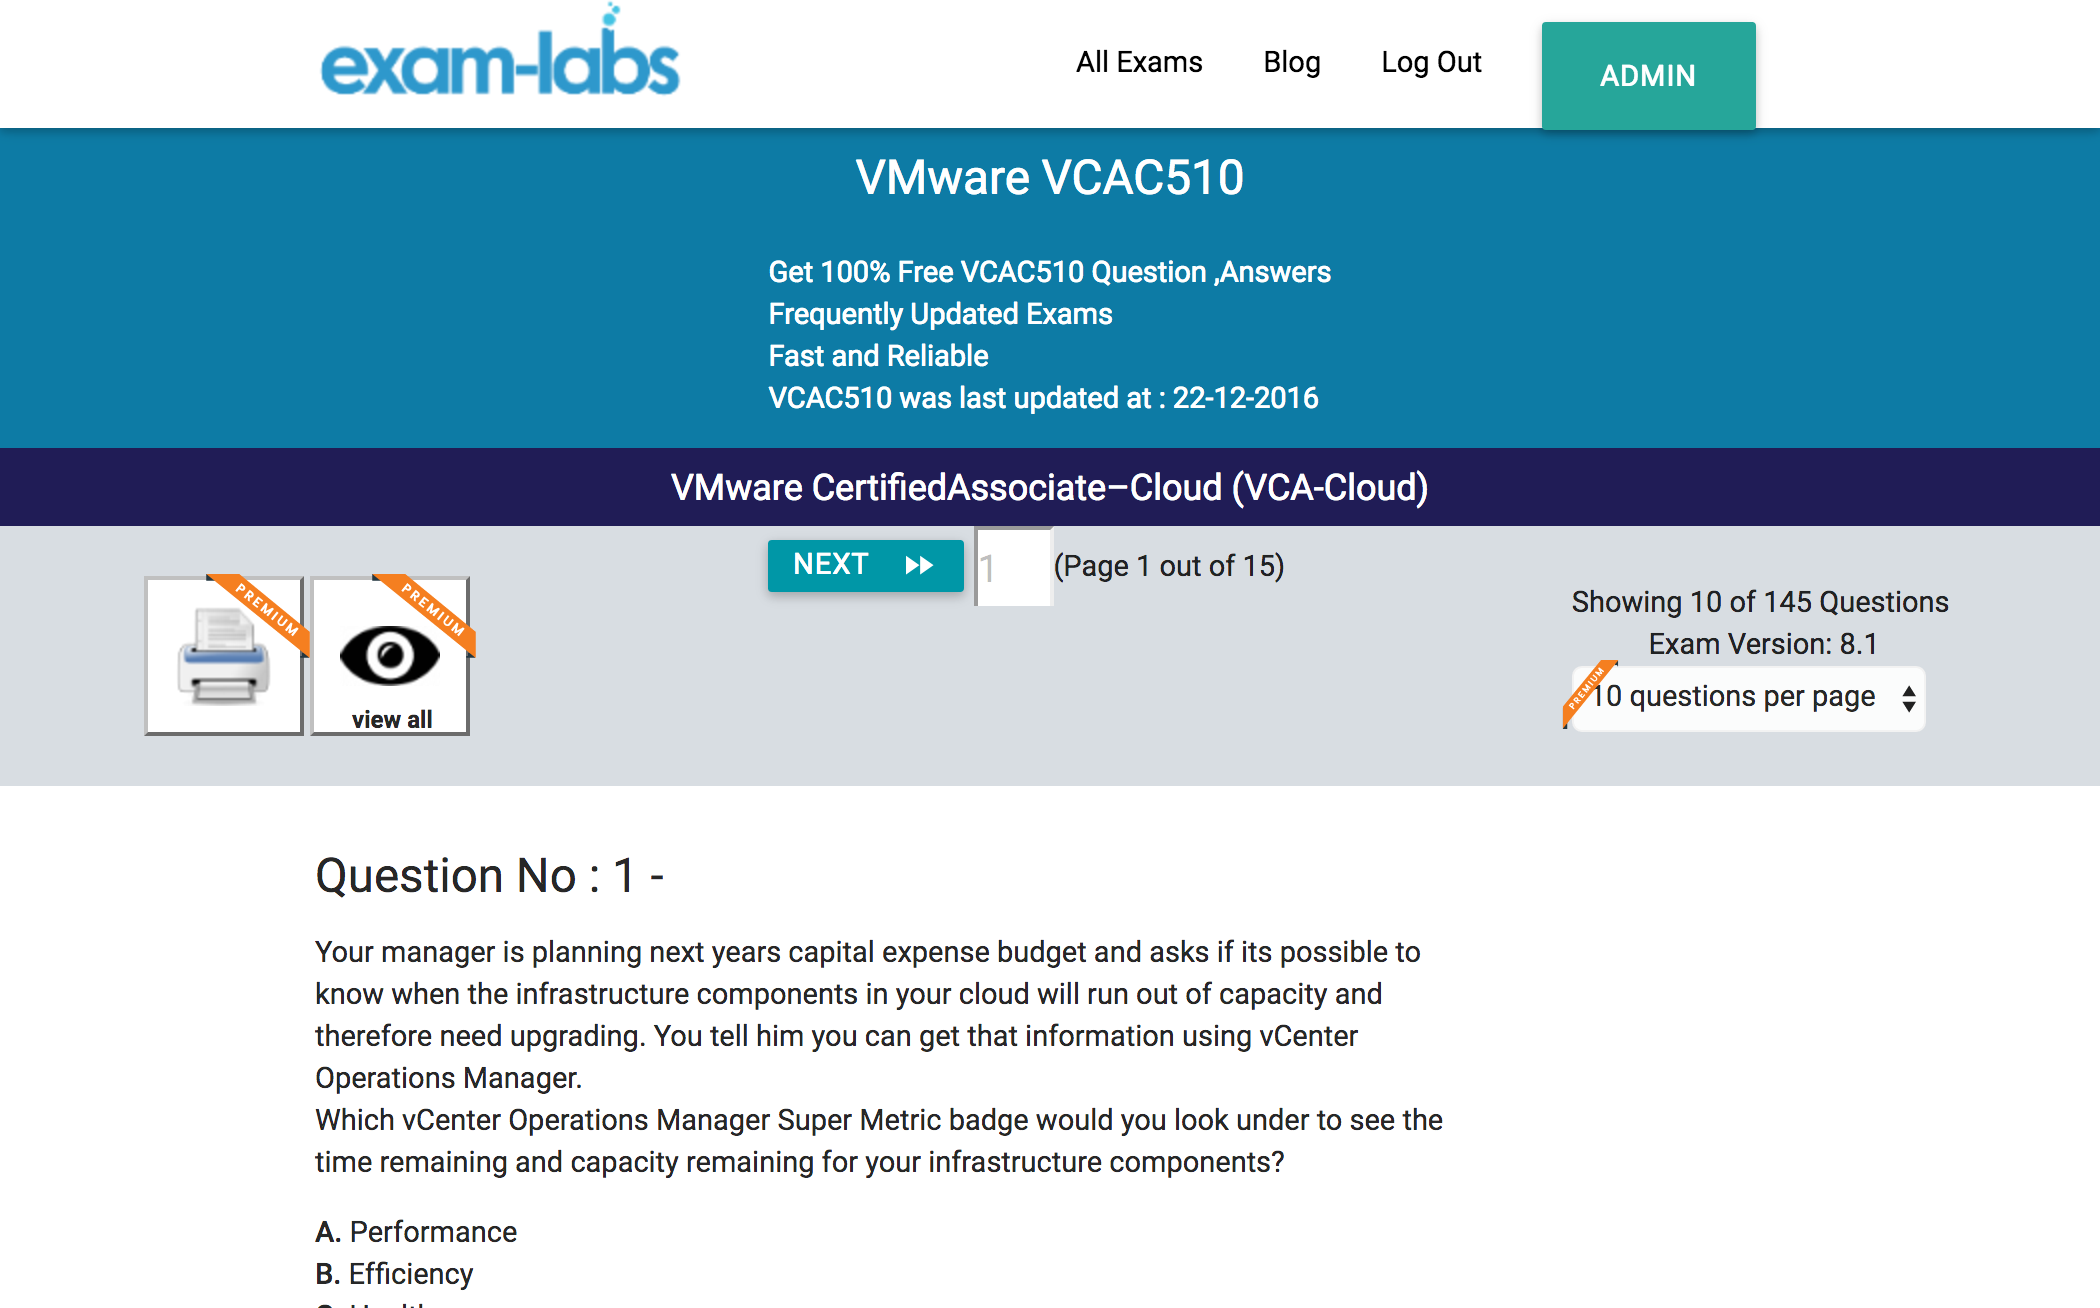 Vcac510 vmware practice exam questions 100 free exam labs vcac510practiceexam1 vcac510practiceexam2 vcac510practiceexam3 1betcityfo Gallery